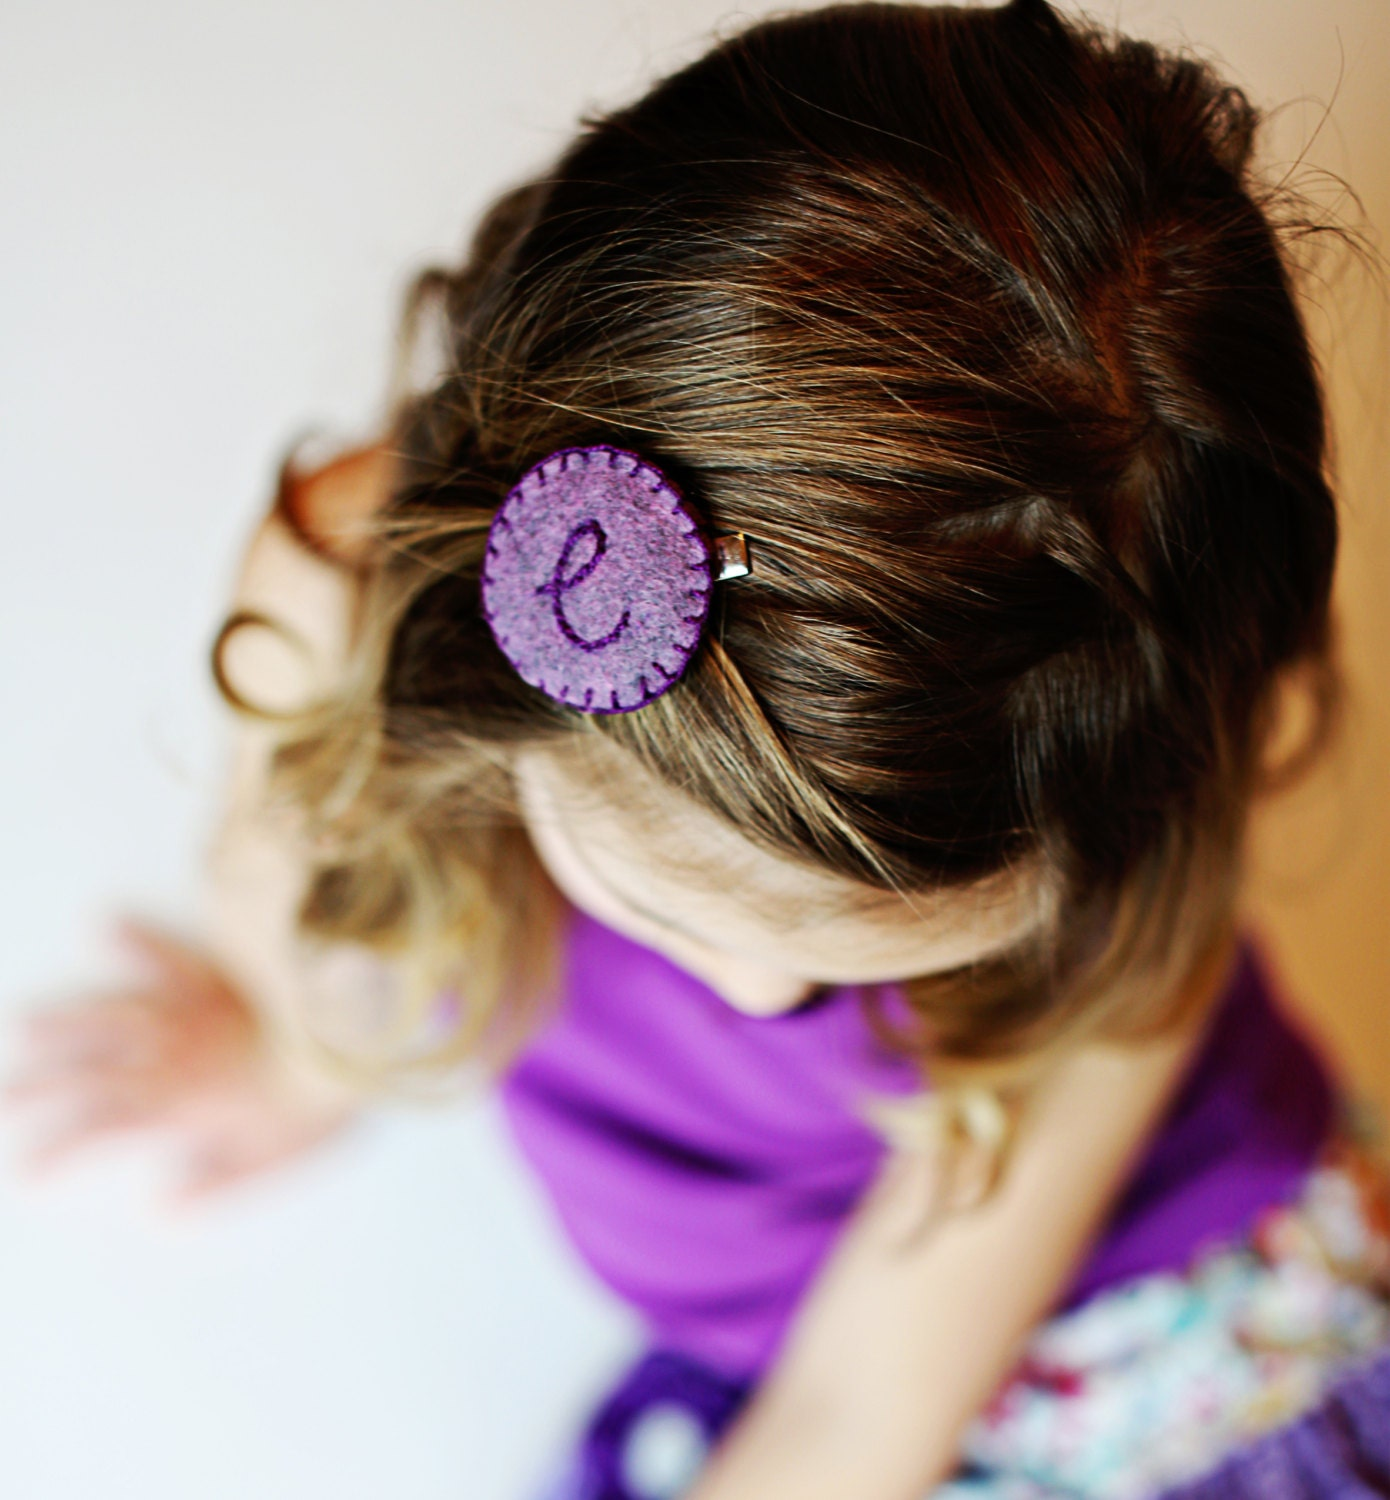 Girls Personalized Hair Clip, Girls Initial Hair Clip, Girls Felt Hair Clip, Hair Accessory, Toddler Monogram Hair clips, Purple, Modern - SweetSapling